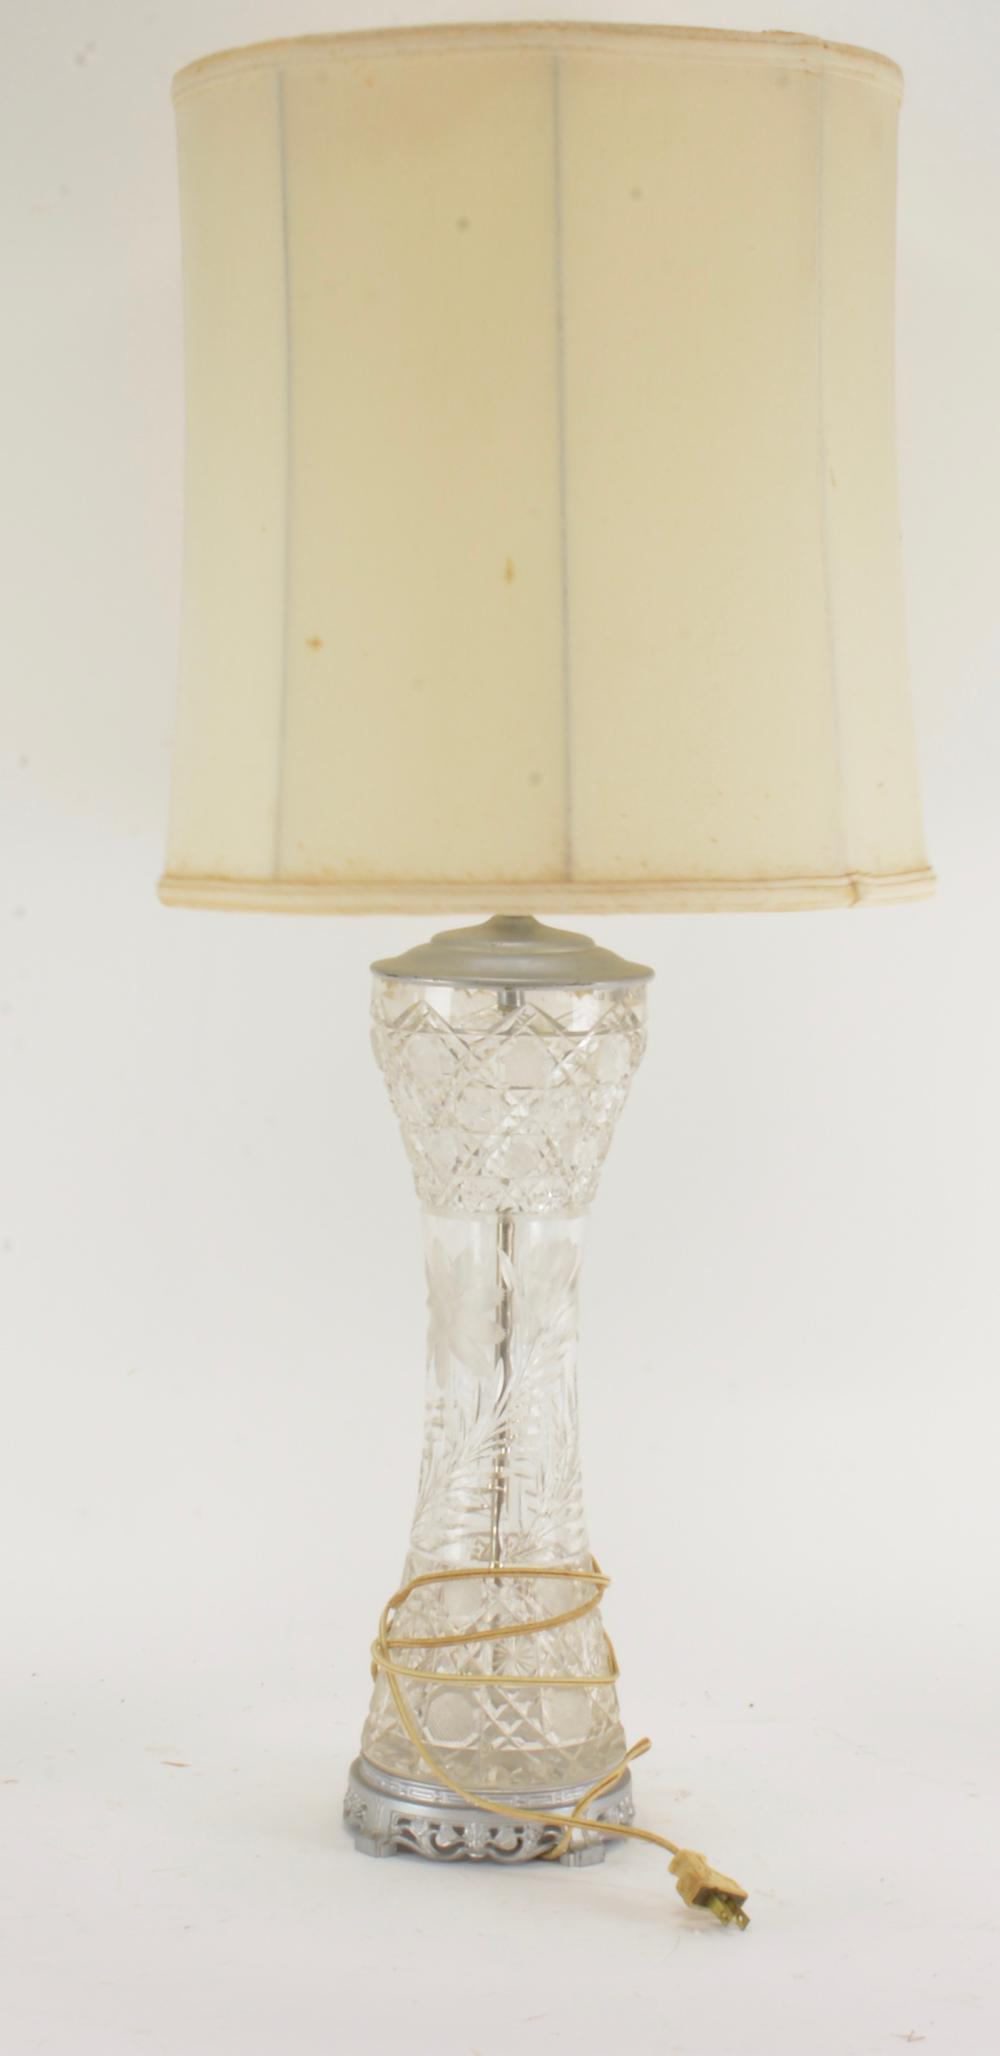 Antique Cut Glass Converted Vase Lamp